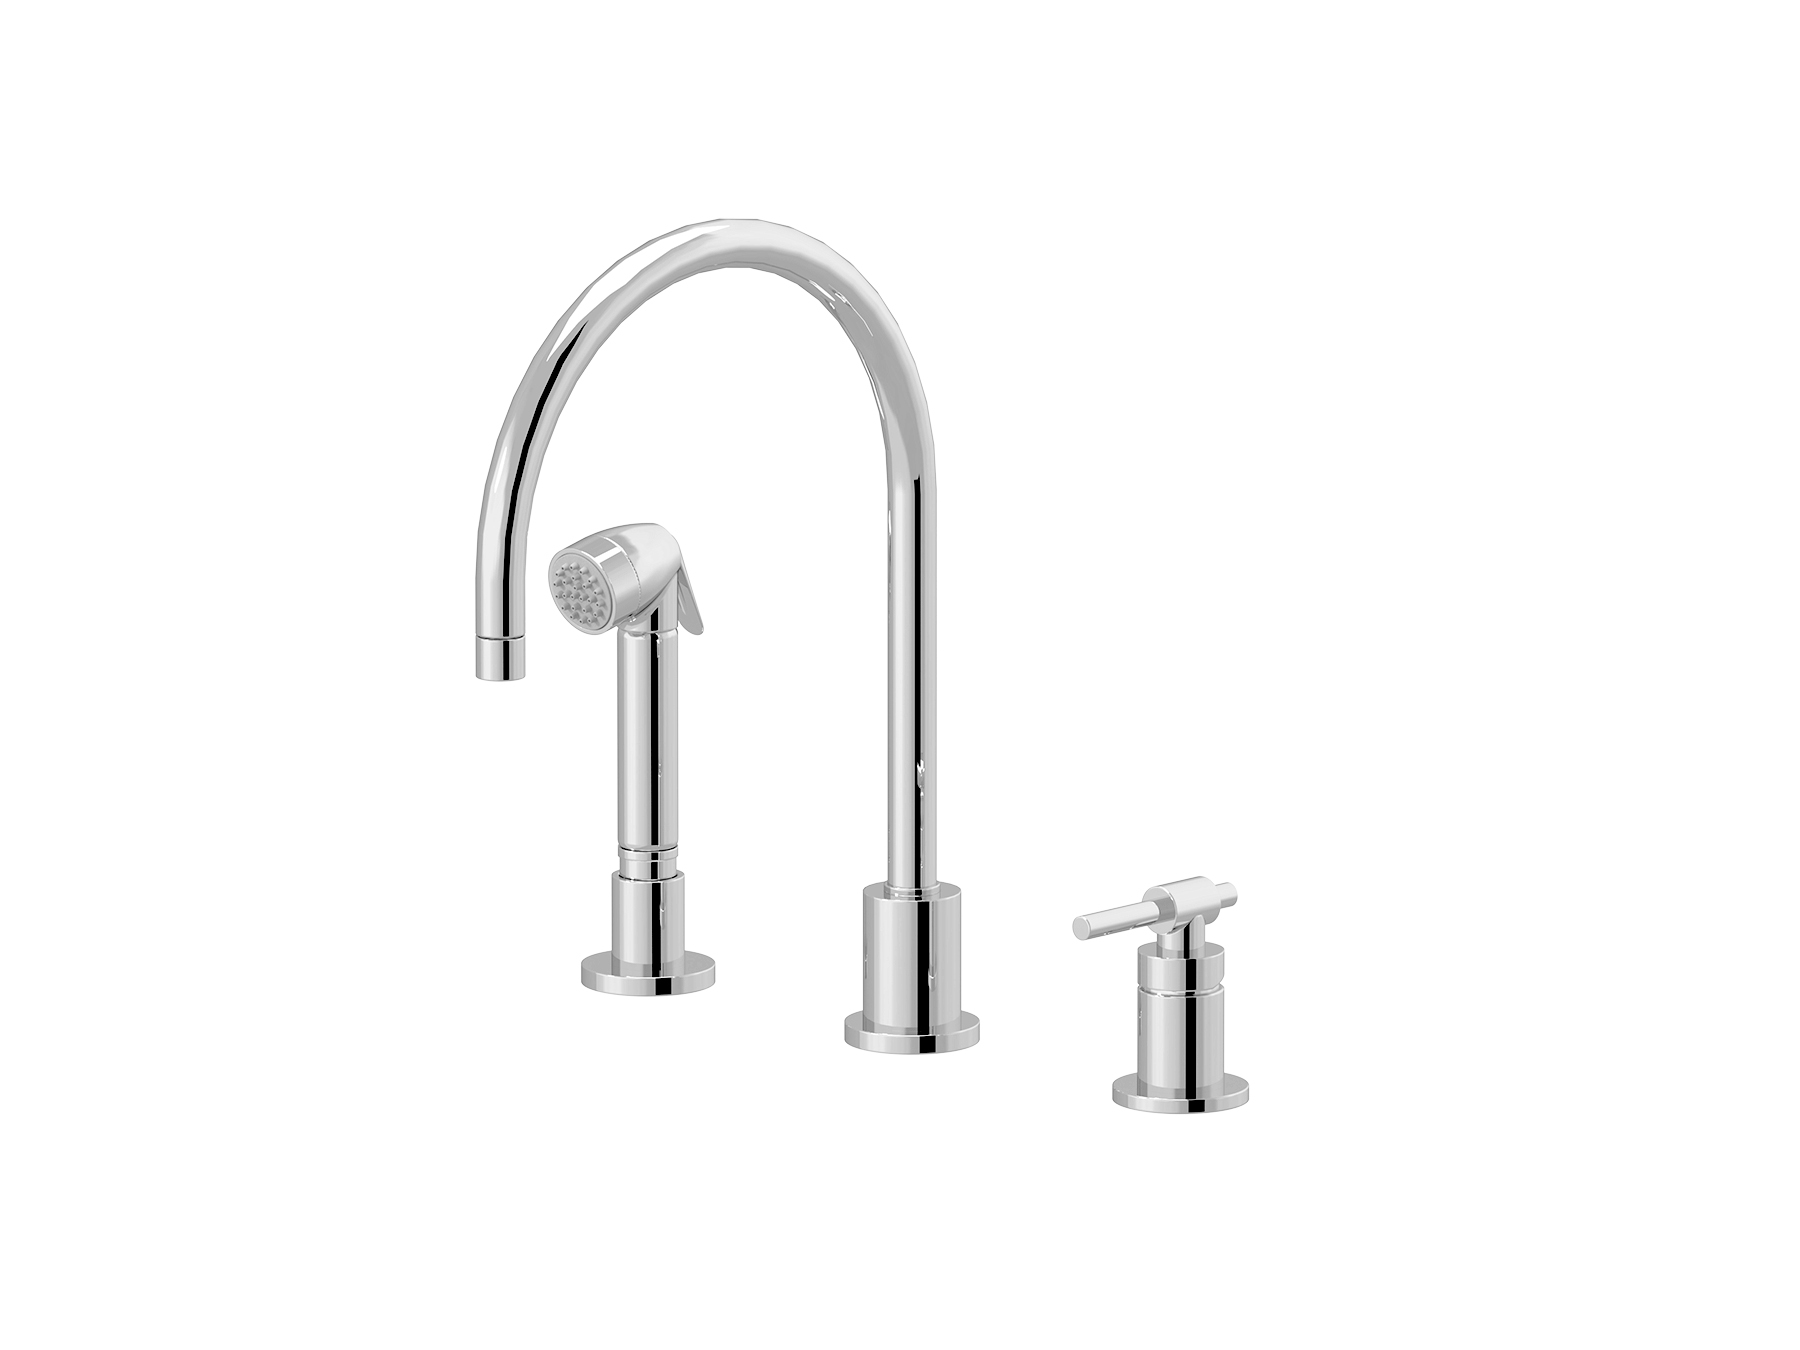 Single-lever kitchen mixer, great spout, handshowe 4527.--.28